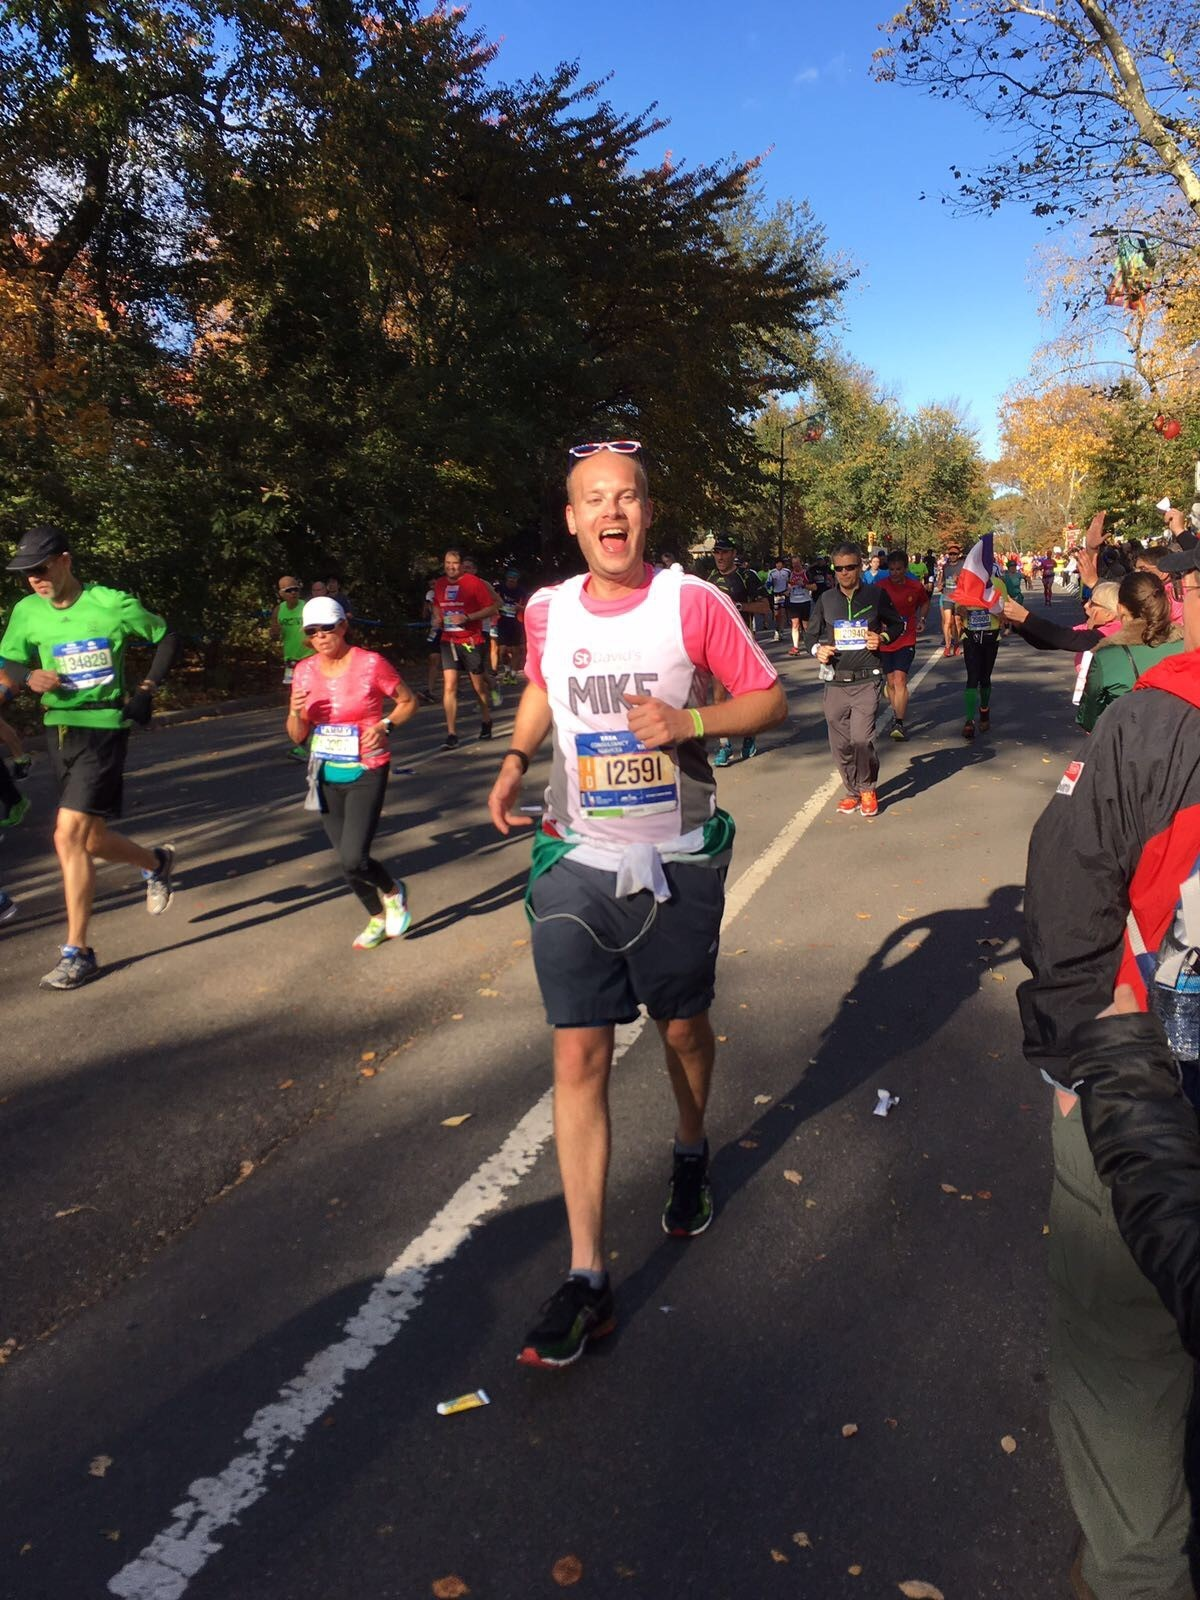 share your last minute london marathon tips and tricks from add your contribution now by uploading a contribution for use online and in print you accept our contributor terms you will either own or have permission